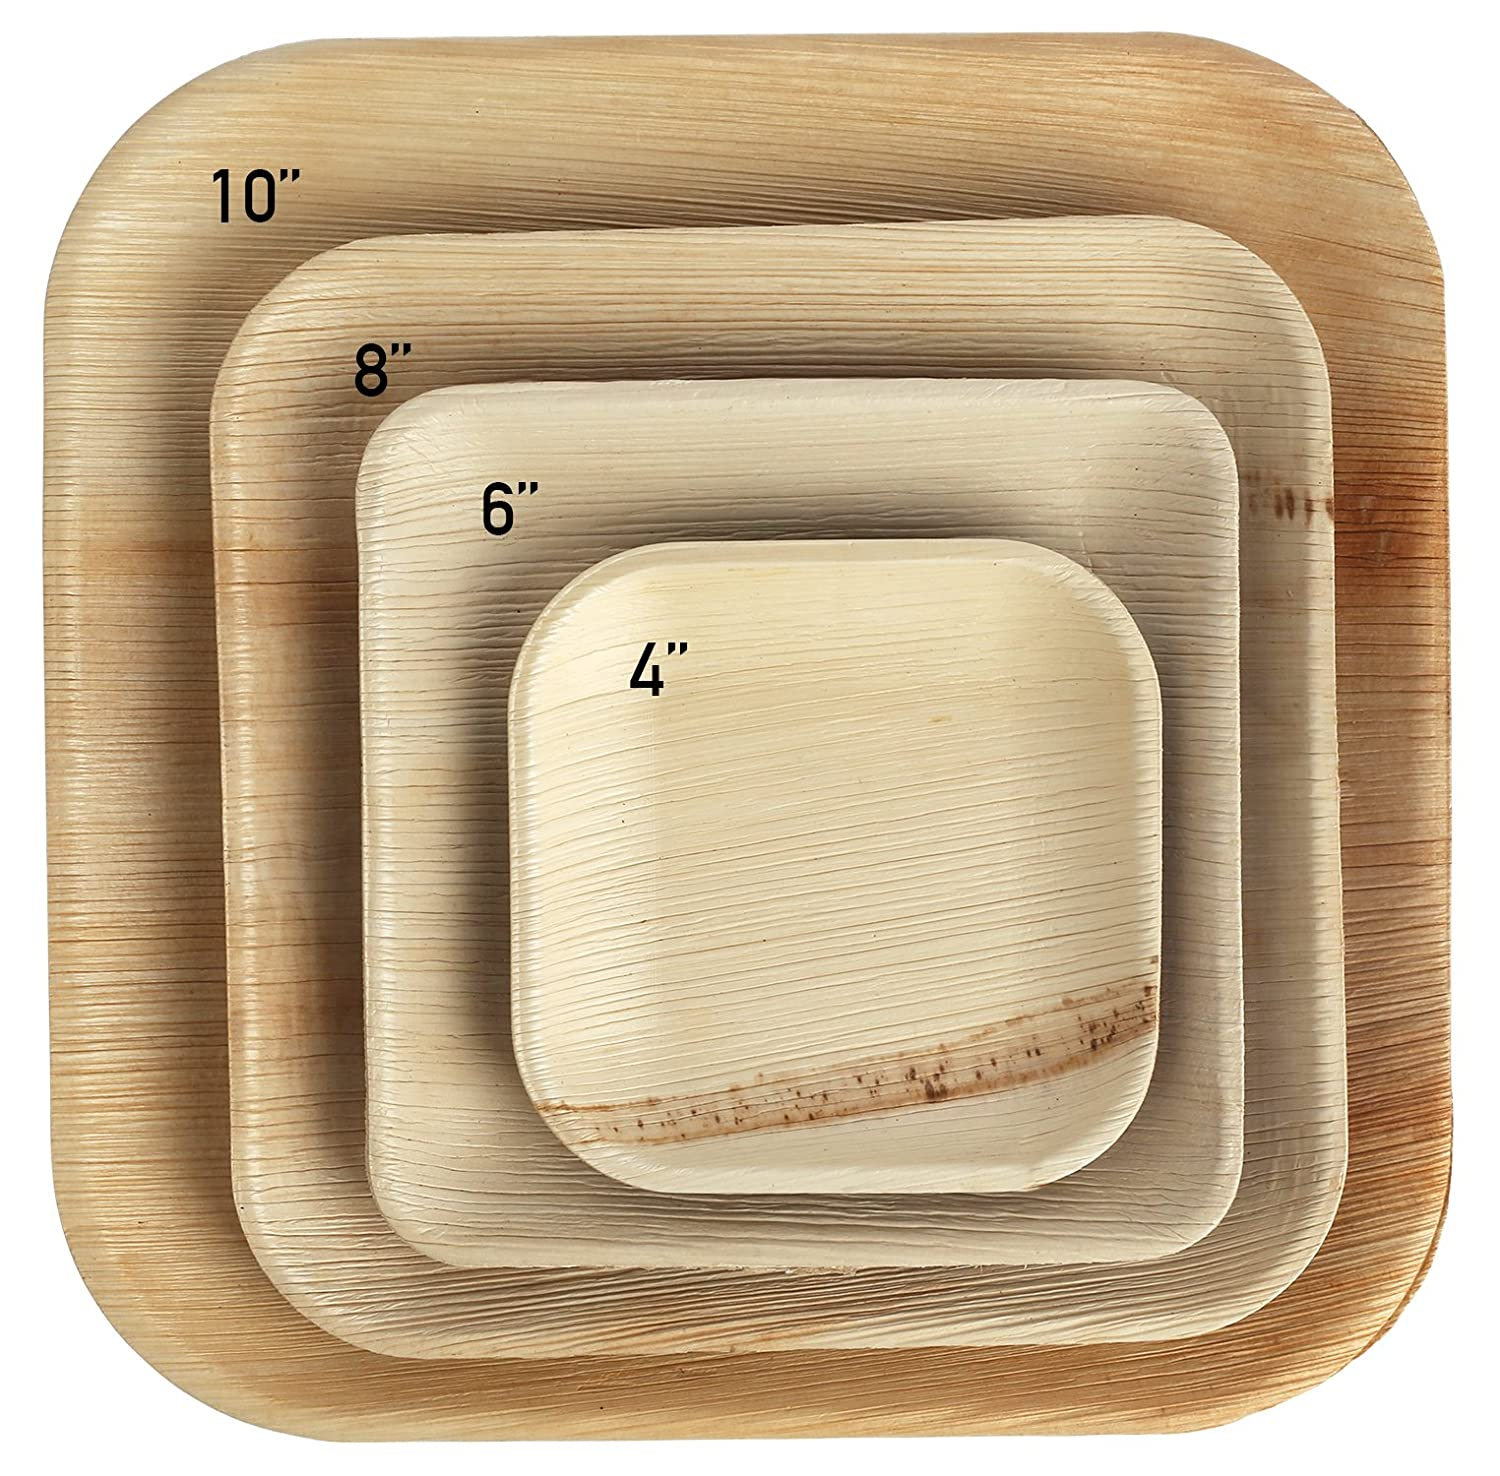 """Brheez Palm Leaf Disposable Bamboo Style Square Plates 6"""" - Sturdy, Biodegradable & Compostable - Eco Alternative To Plastic & Paper (Pack of 25)"""